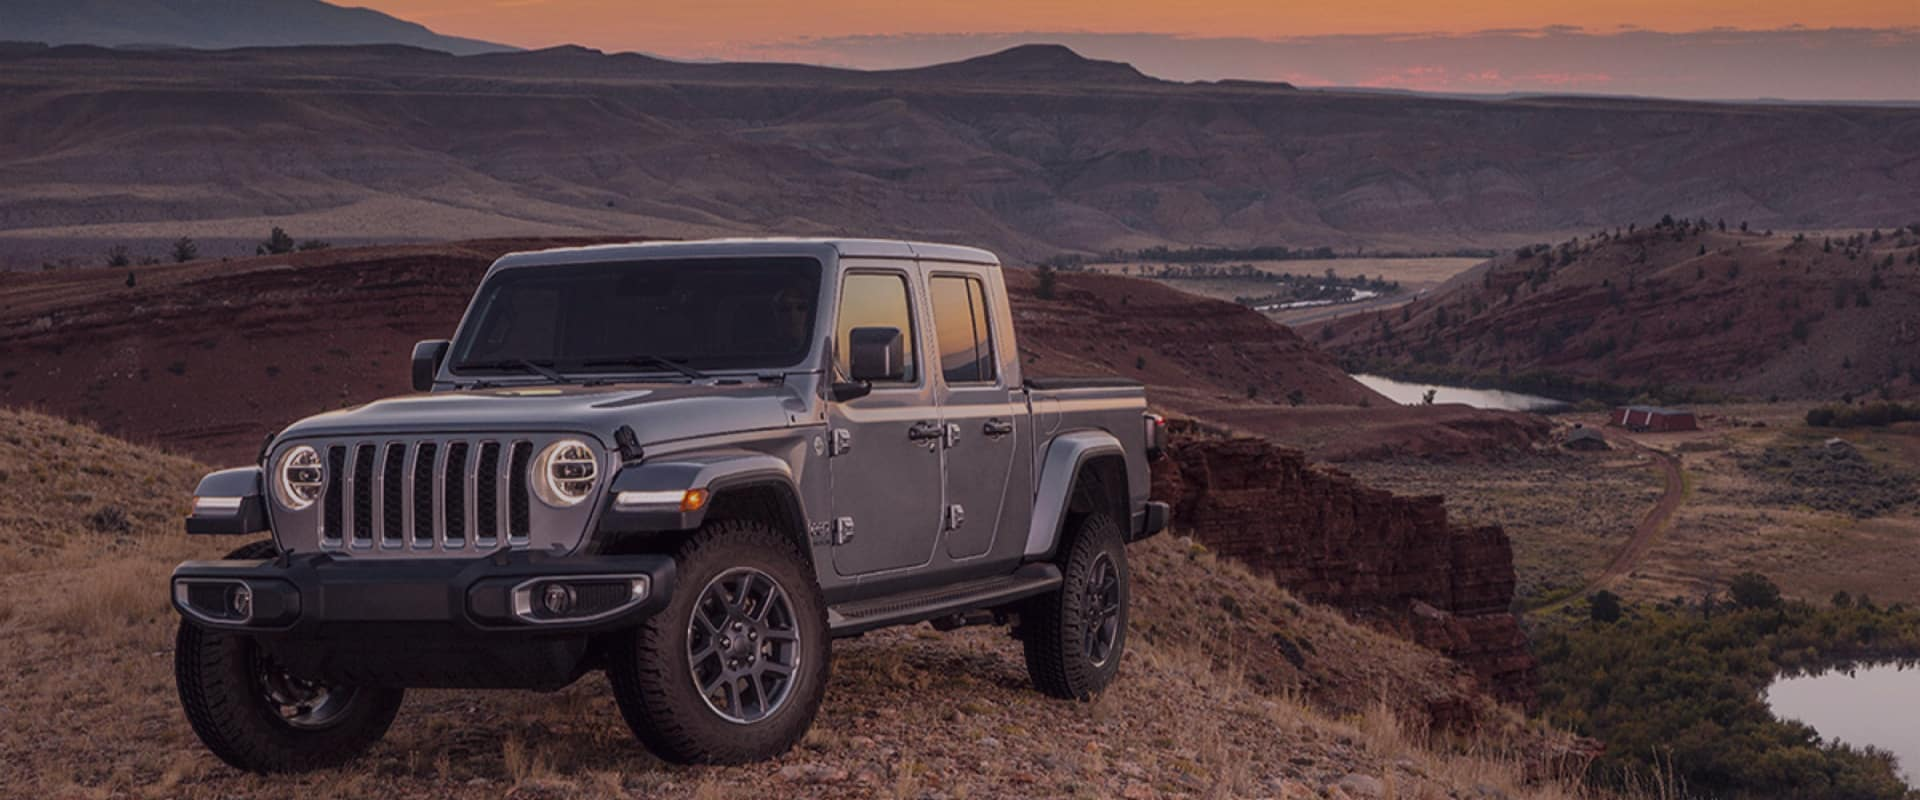 Jeep over canyon